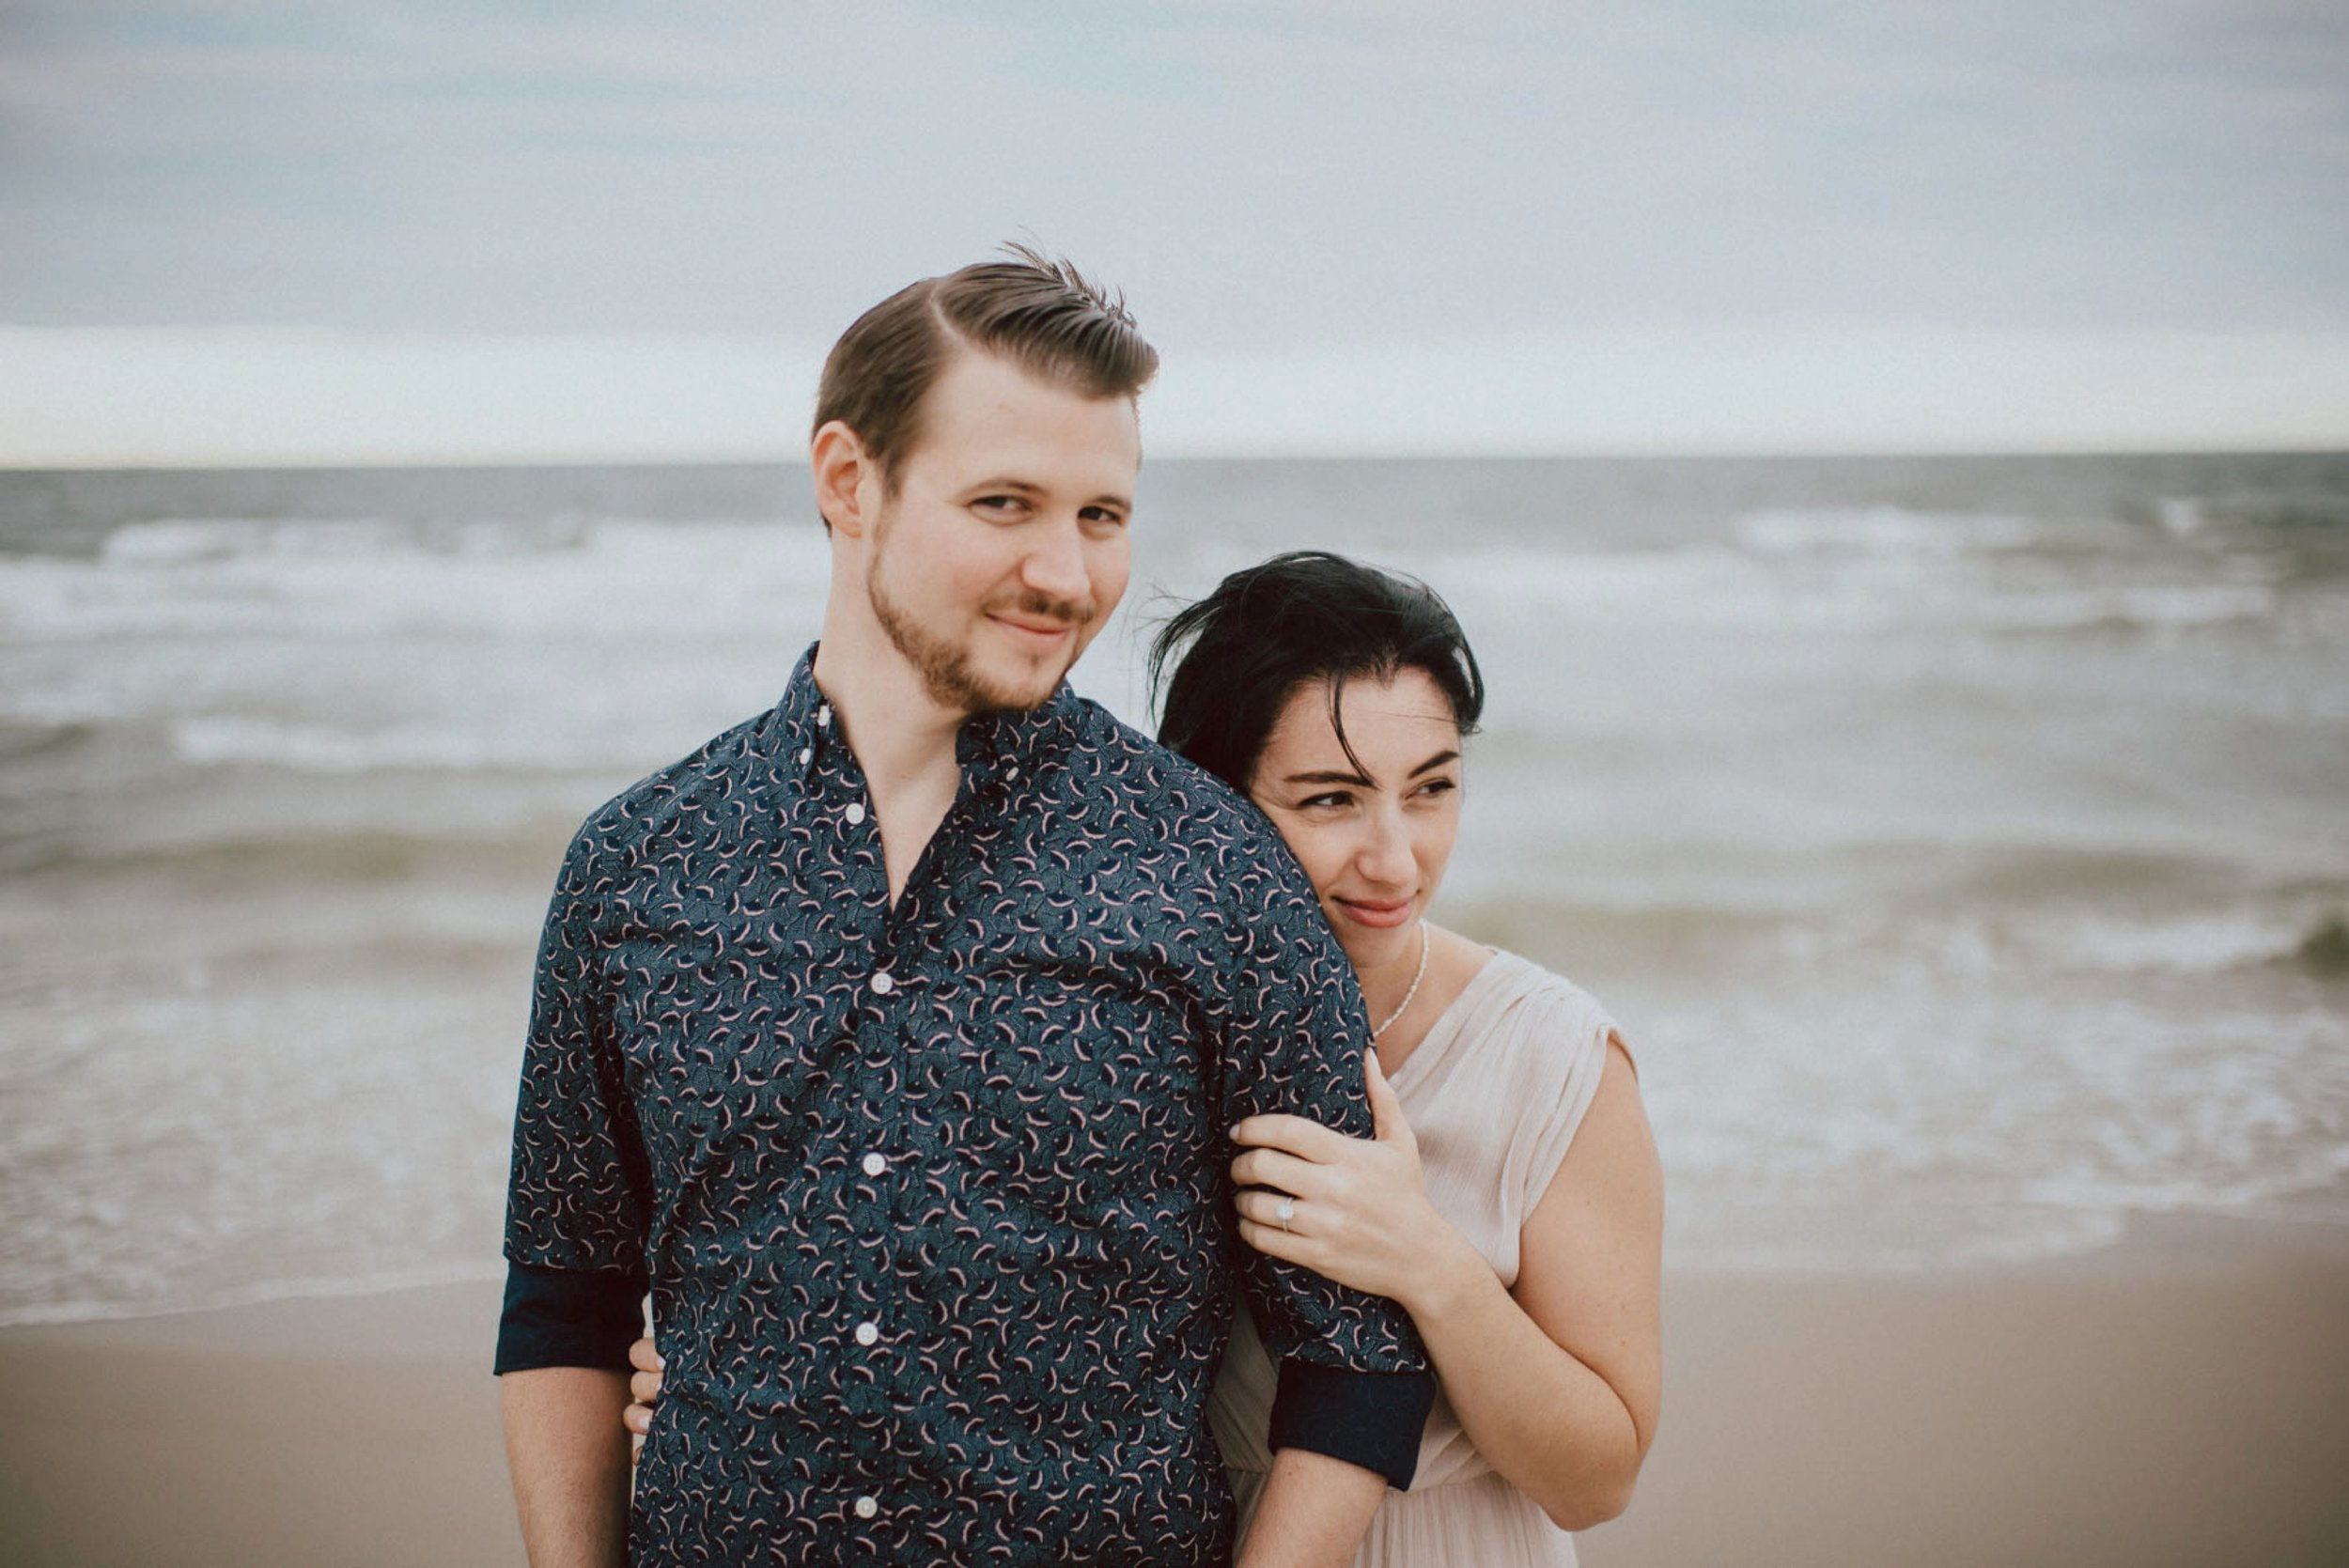 Long-beach-island-engagement-session-26.jpg